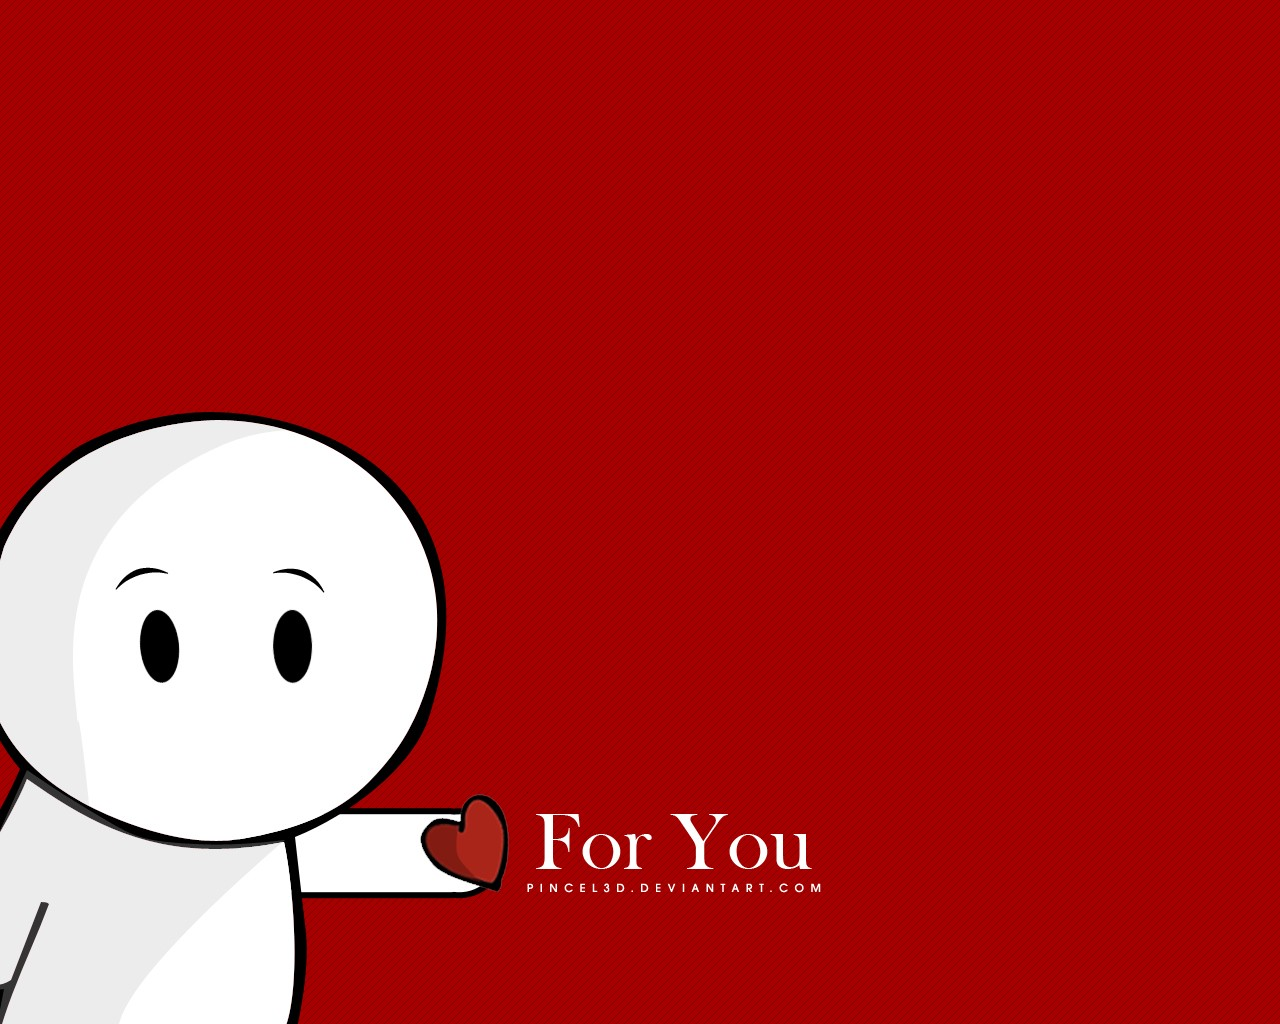 Wallpaper Hd 3d I Love You : I Love You Wallpapers HD A16 - HD Desktop Wallpapers 4k HD